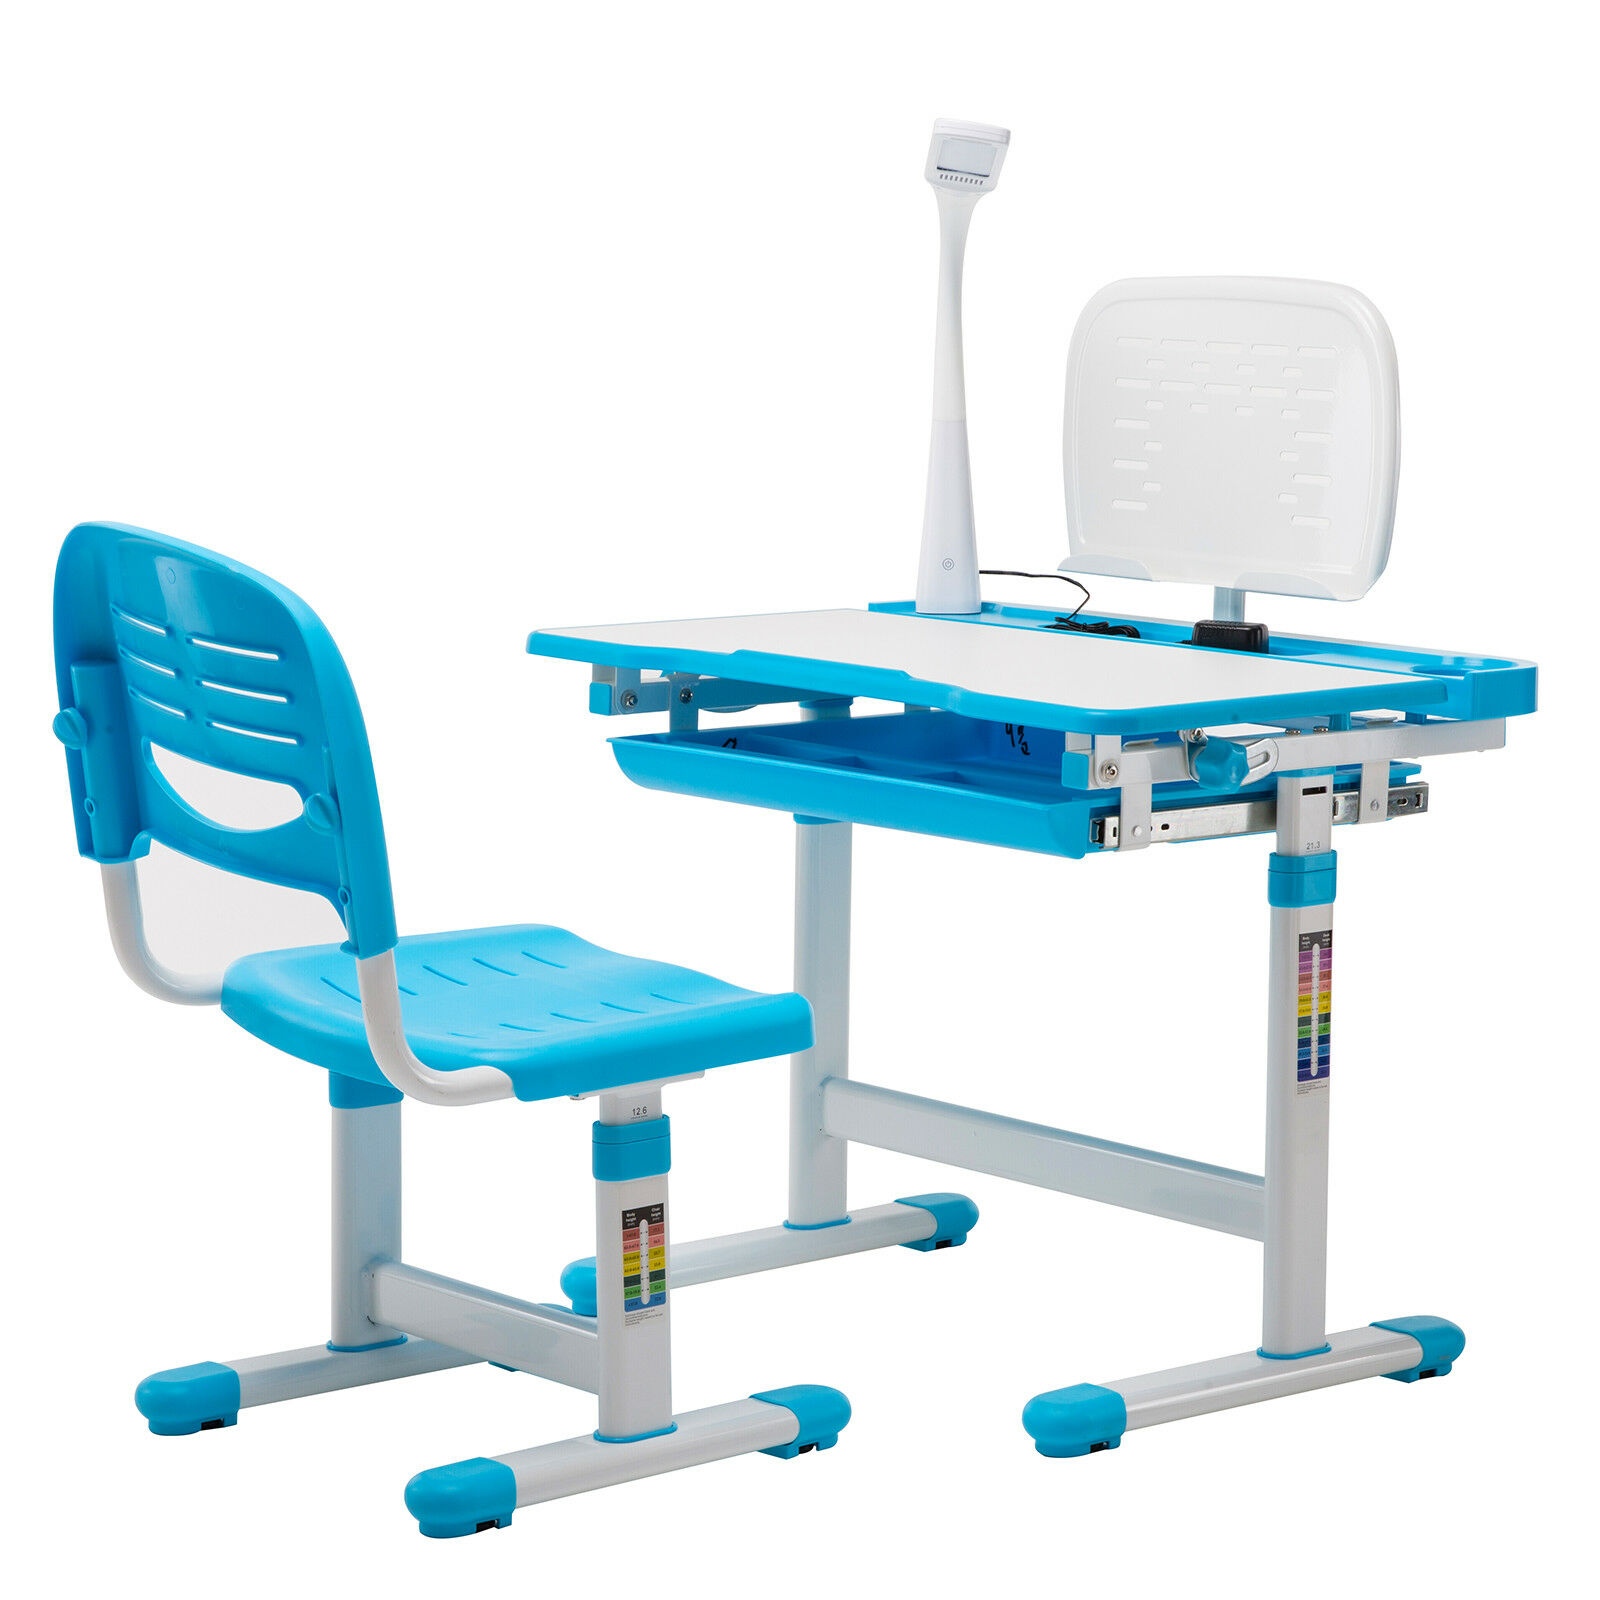 Fabulous Blue Adjustable Childrens Study Desk Chair Set Kids Table W Desk Lamp Gmtry Best Dining Table And Chair Ideas Images Gmtryco